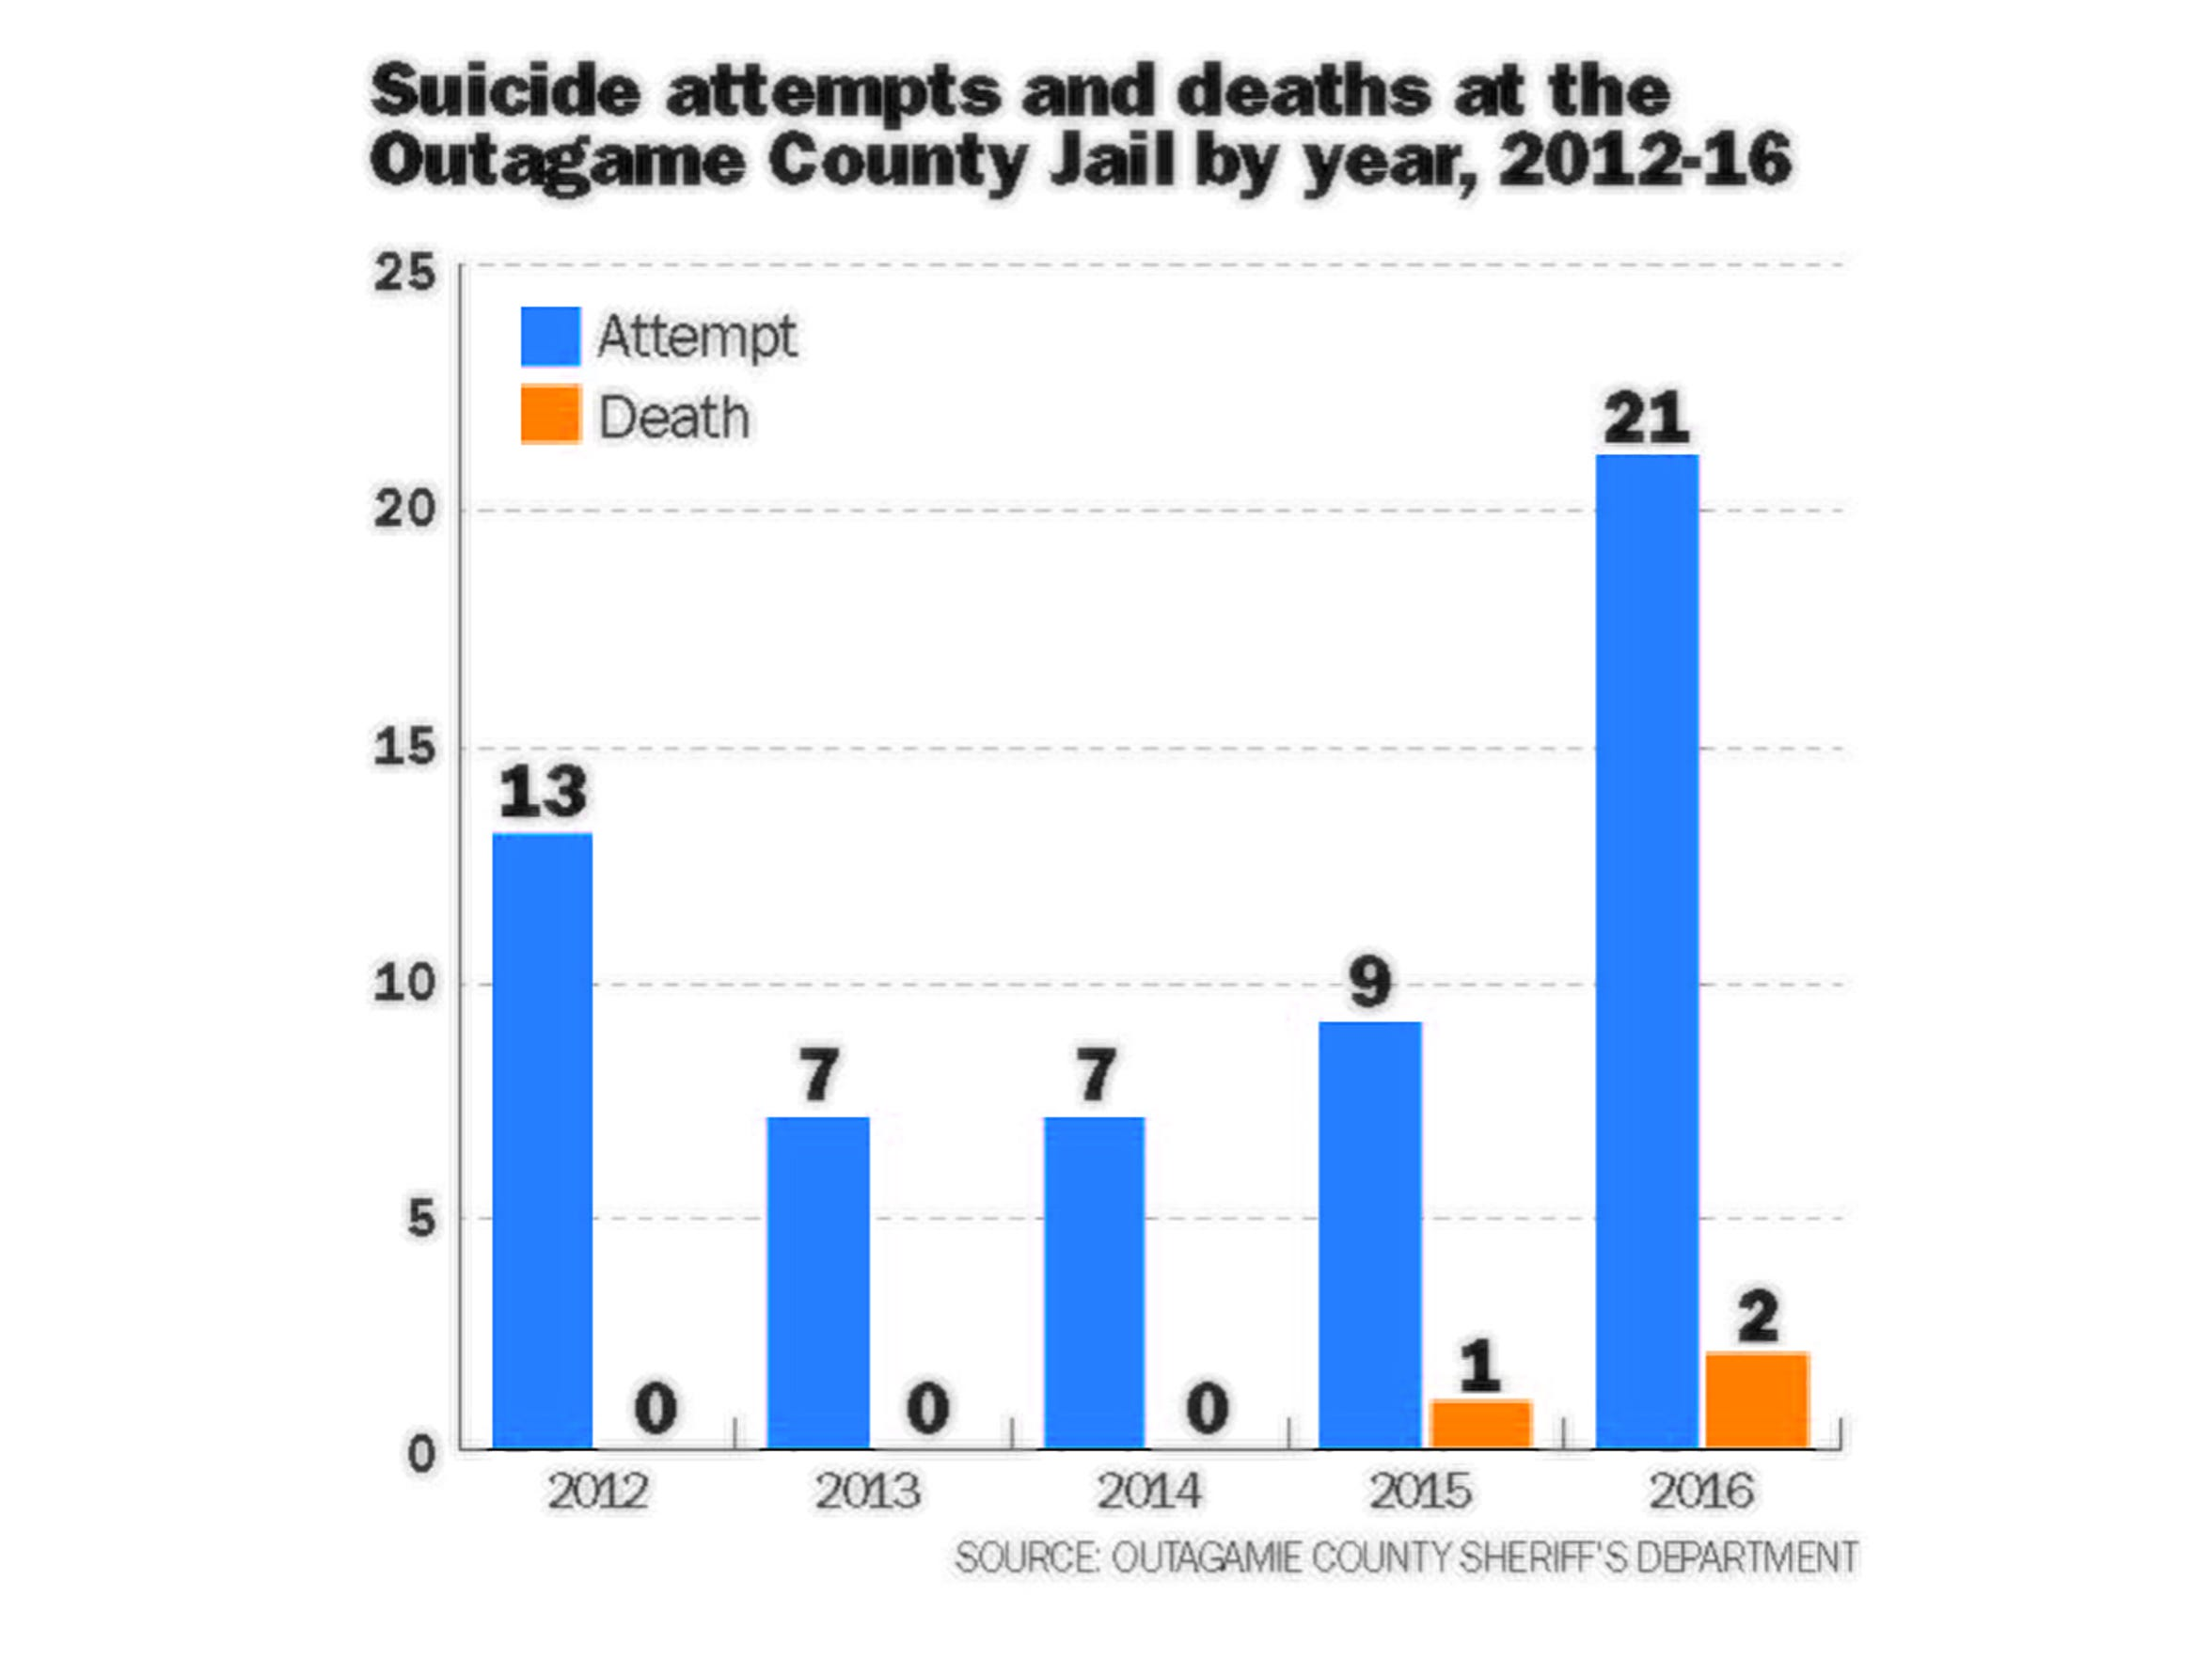 The number of suicide attempts has nearly doubled in